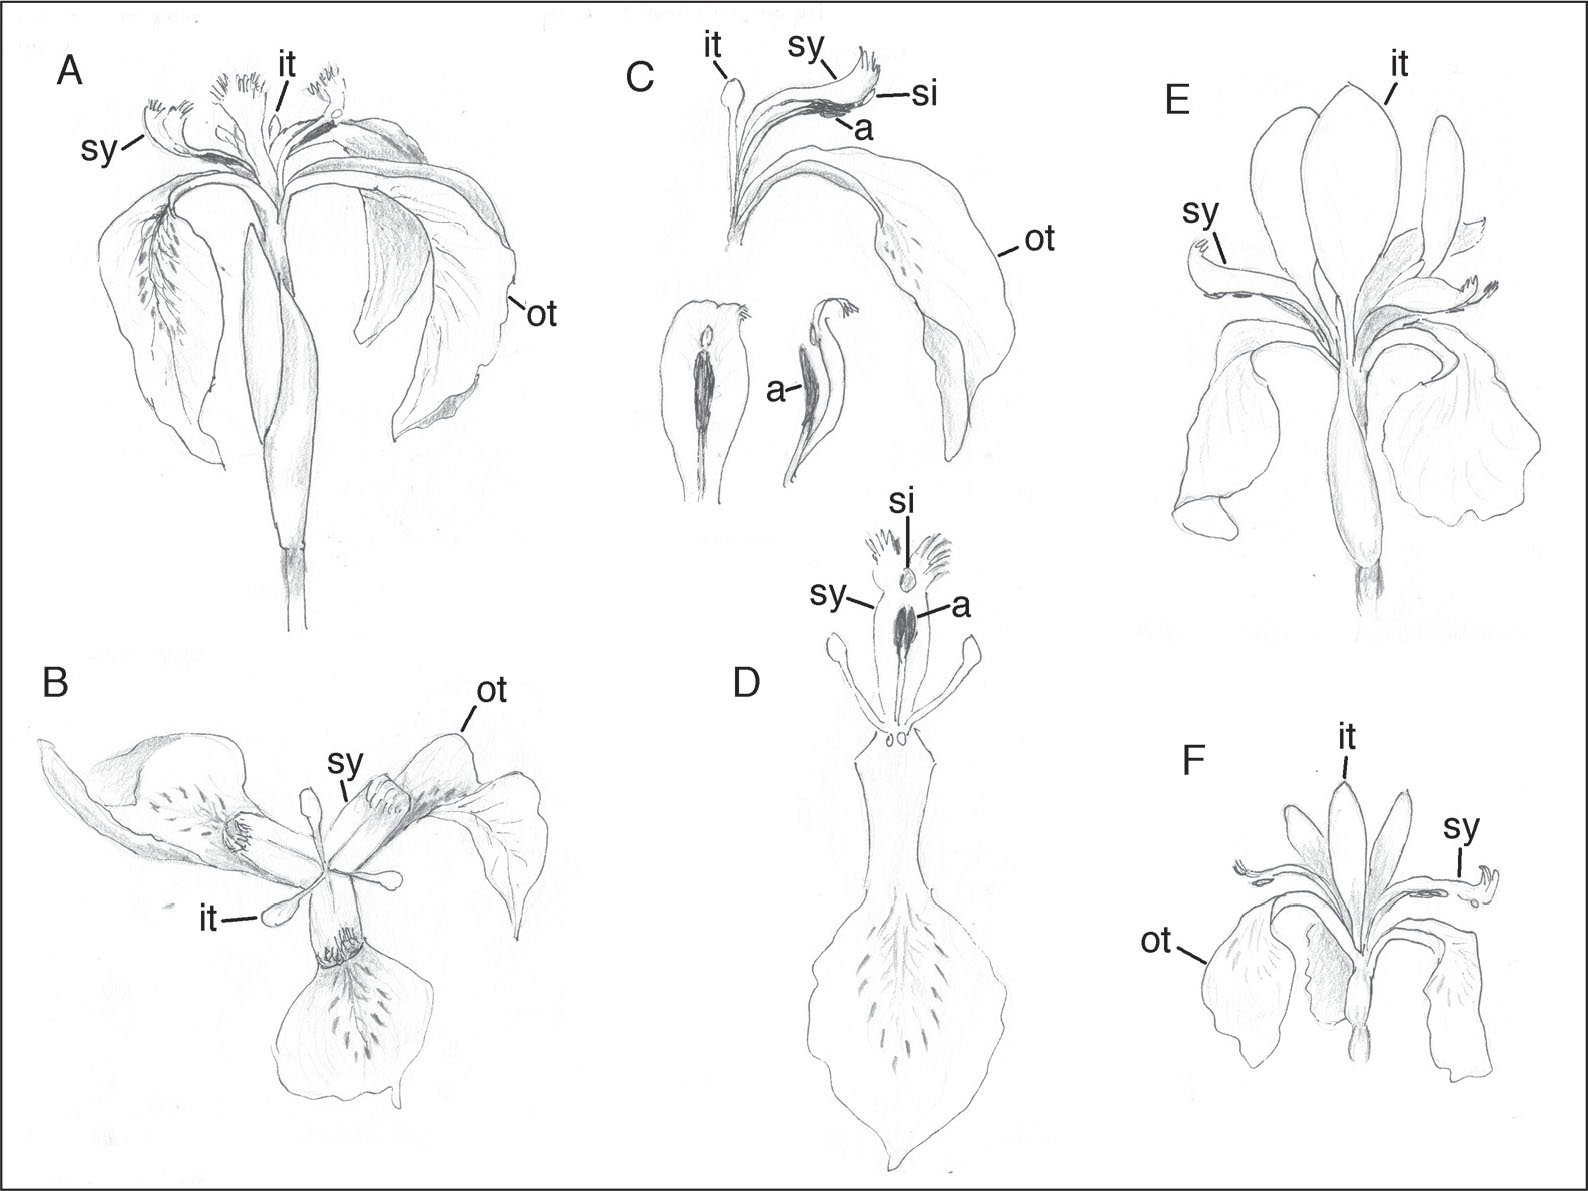 a note on iris flower anthesis mechanism and meaning of sudden F-22 Formation e i sanguinea japanese iris f i versicolar blueflag iris ot outer tepal it inner tepal banner a anther sy style and si stigma